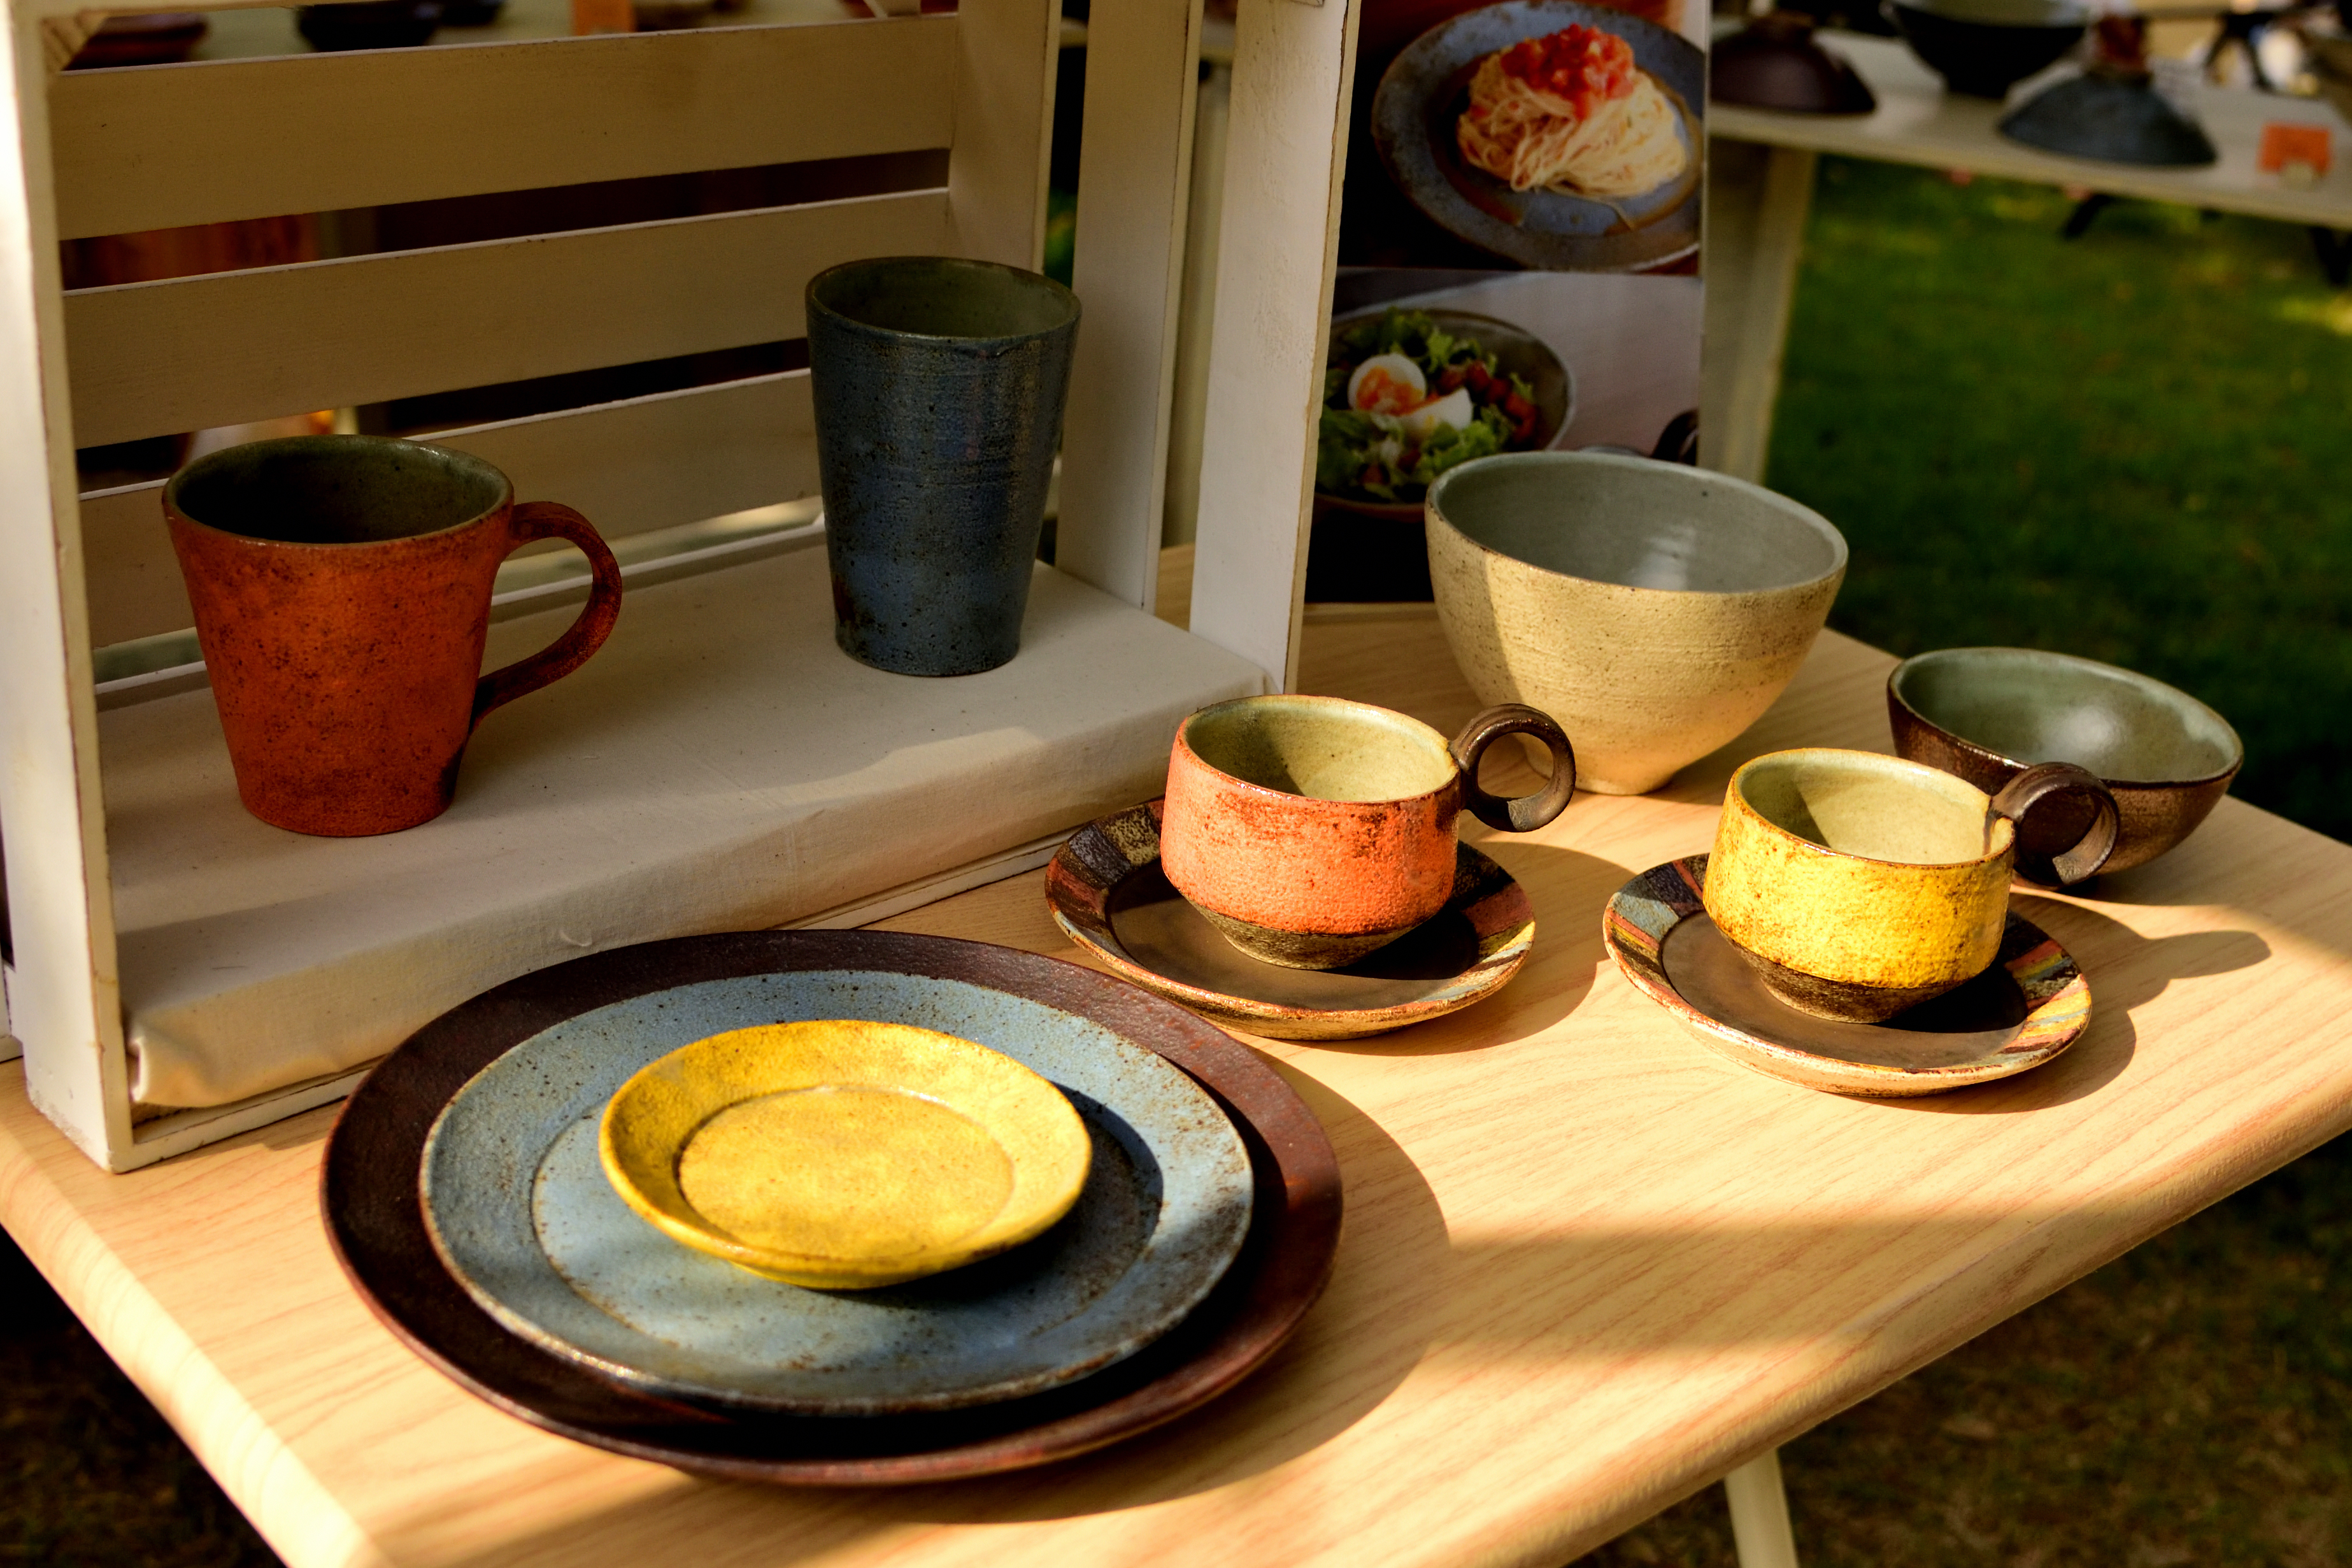 Wood desk and pottery plate in Craftfair Matsumoto